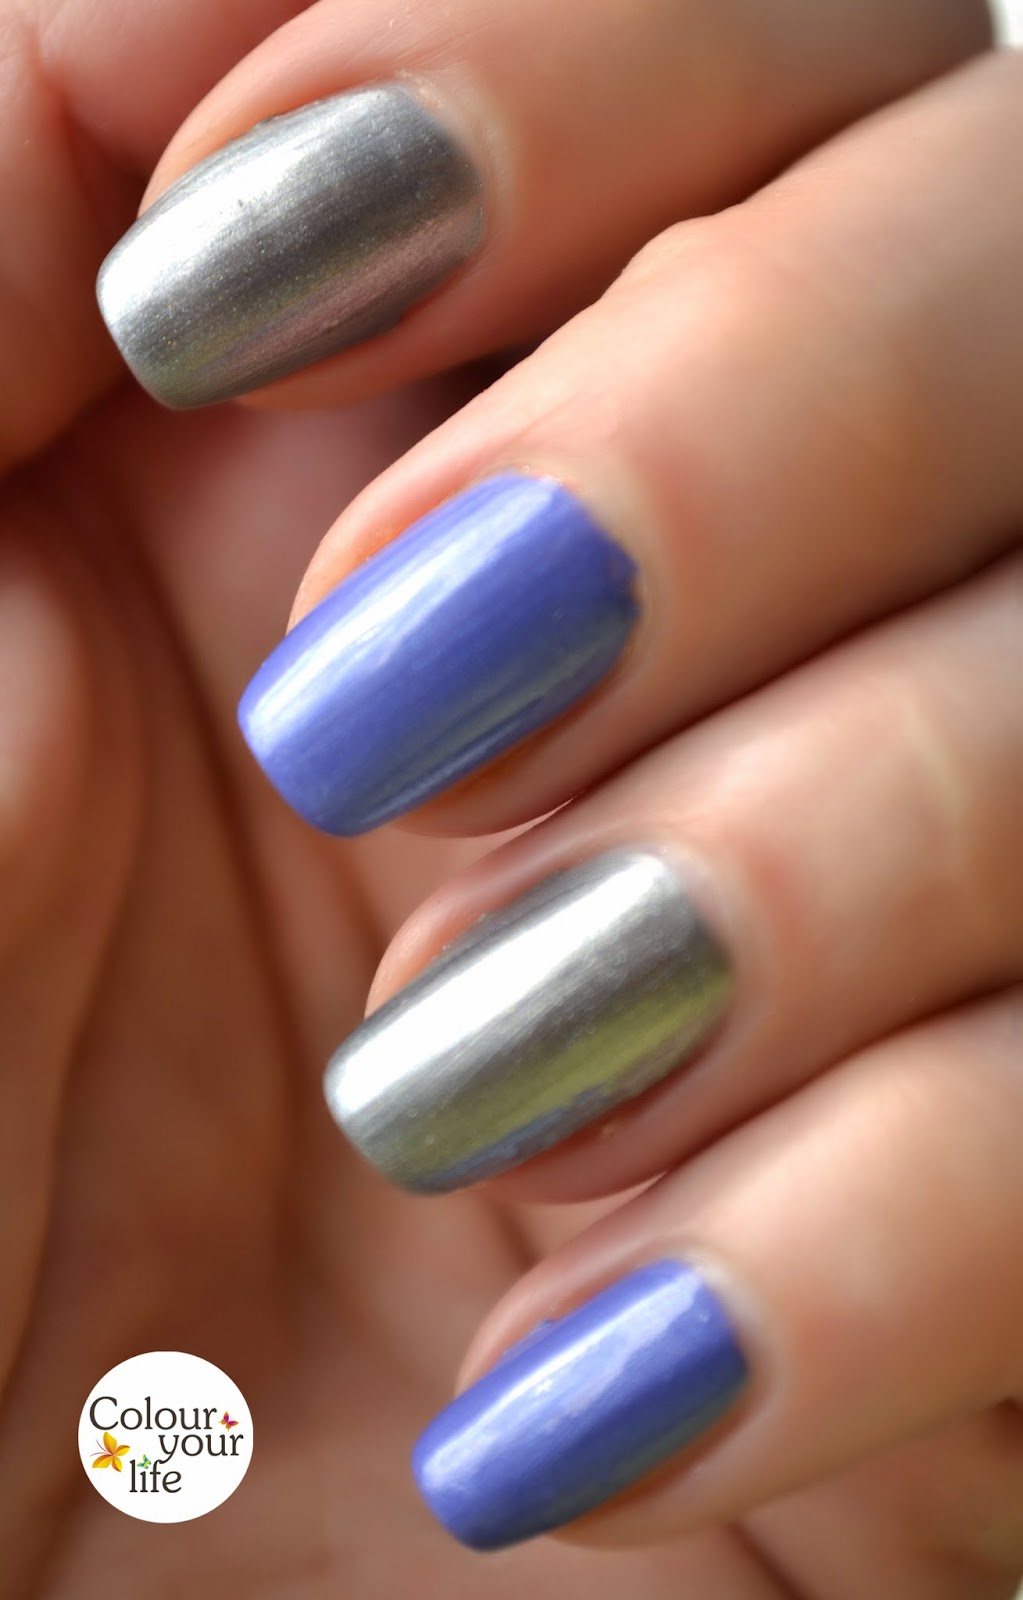 I Thought To Mix These Three Polishes In A Manicure Because Think They Look Very Good Together